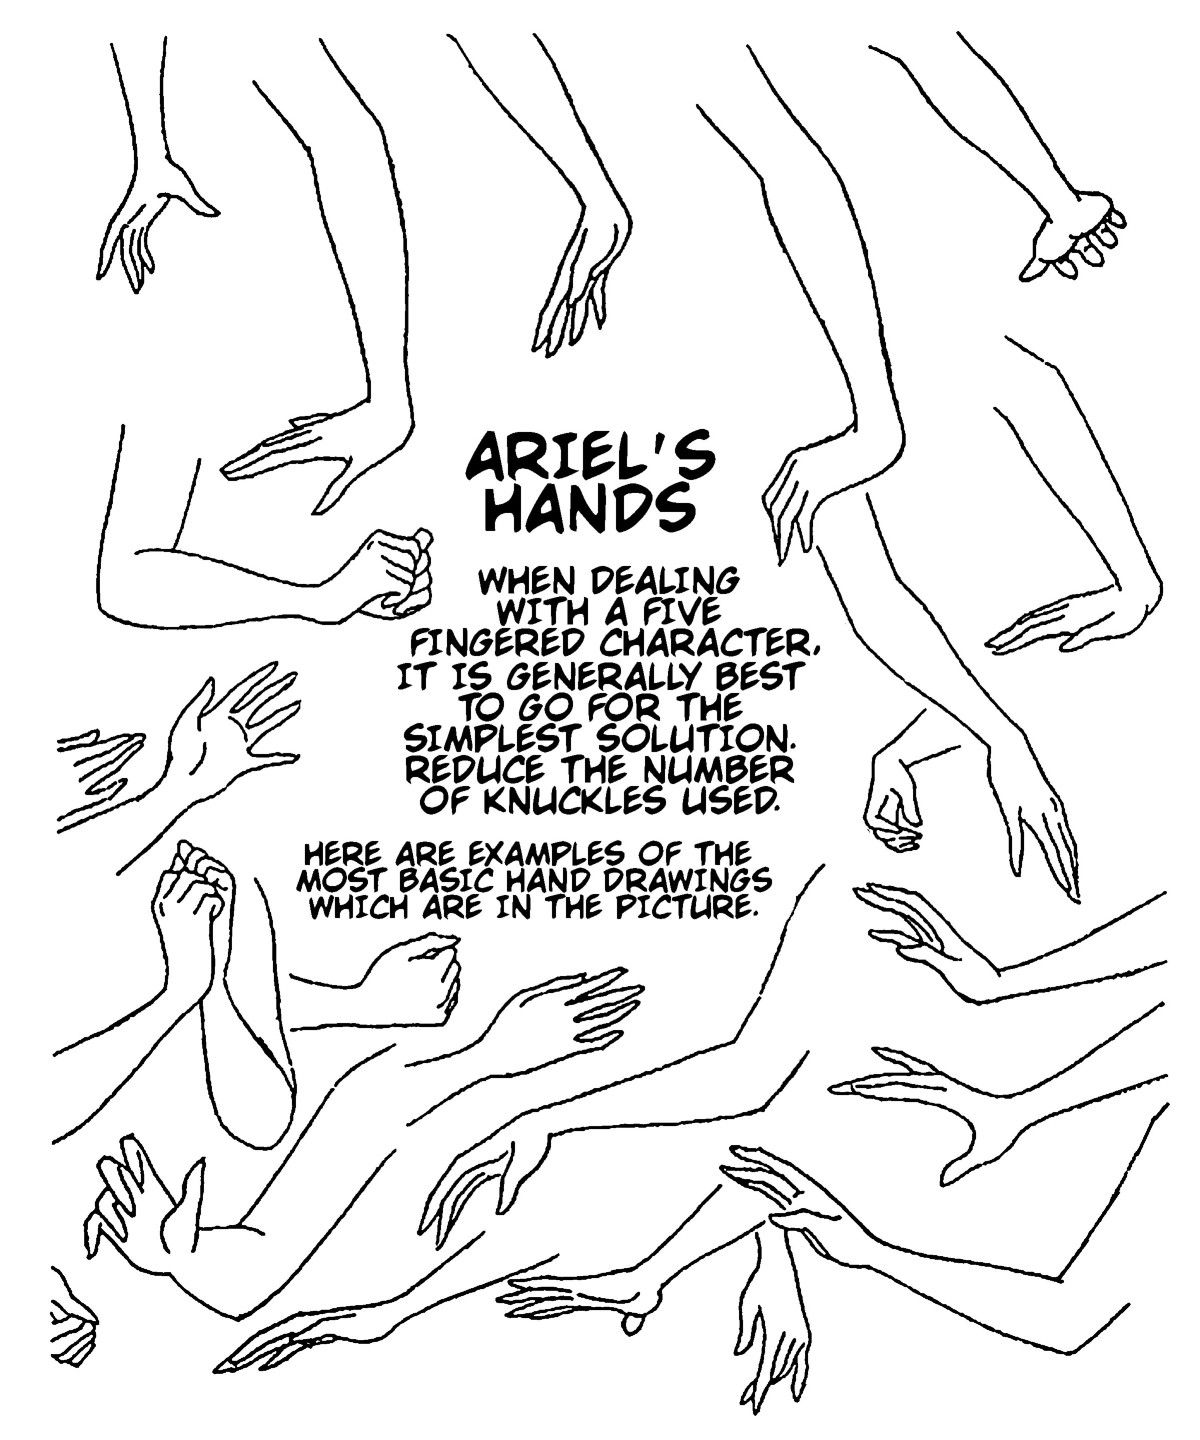 If you want to draw girl hands, these are some samples